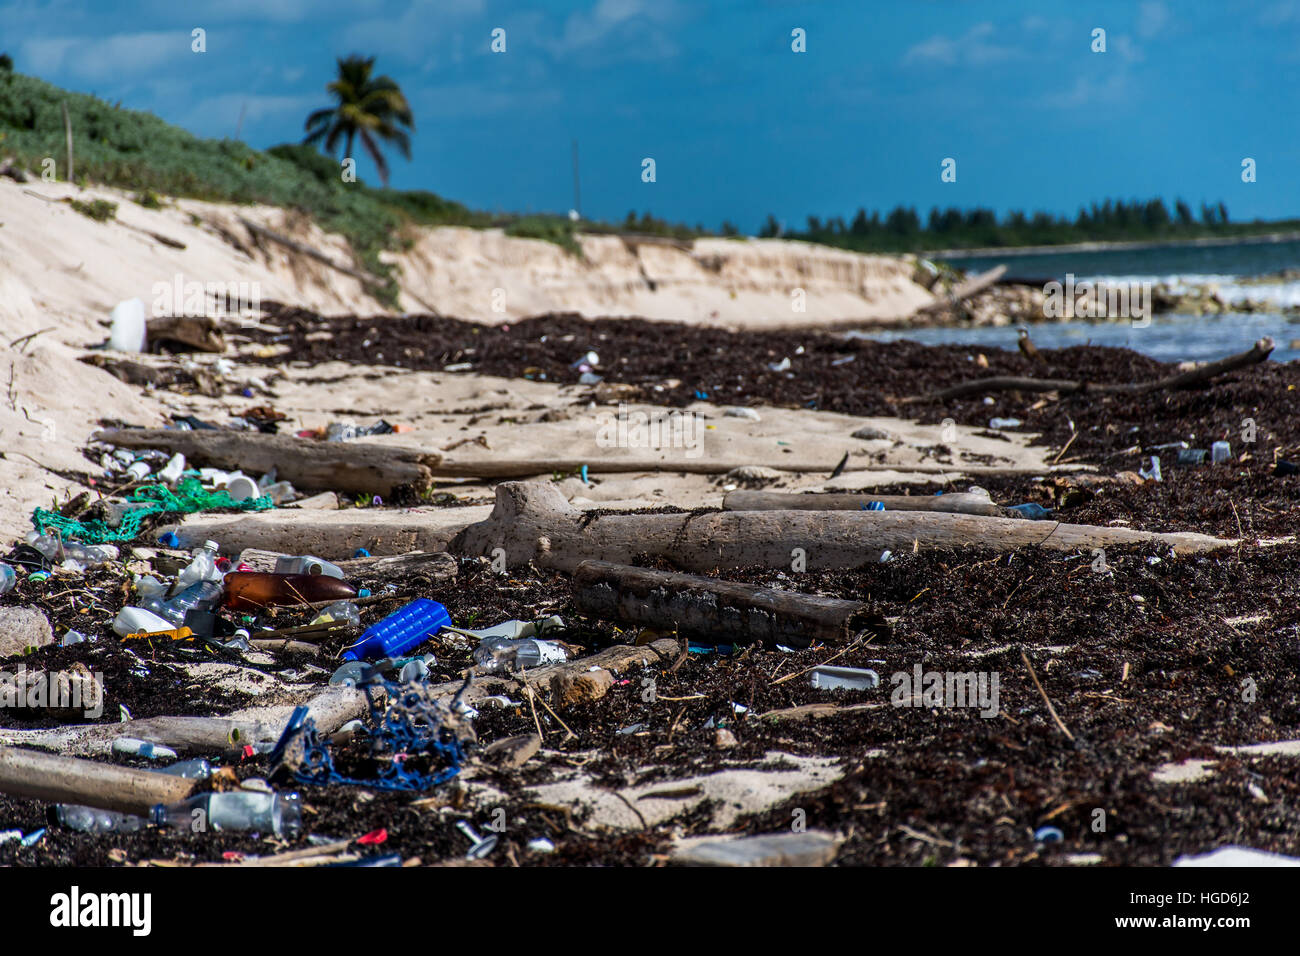 Mexico Coastline ocean Pollution Problem with plastic litter 2 - Stock Image